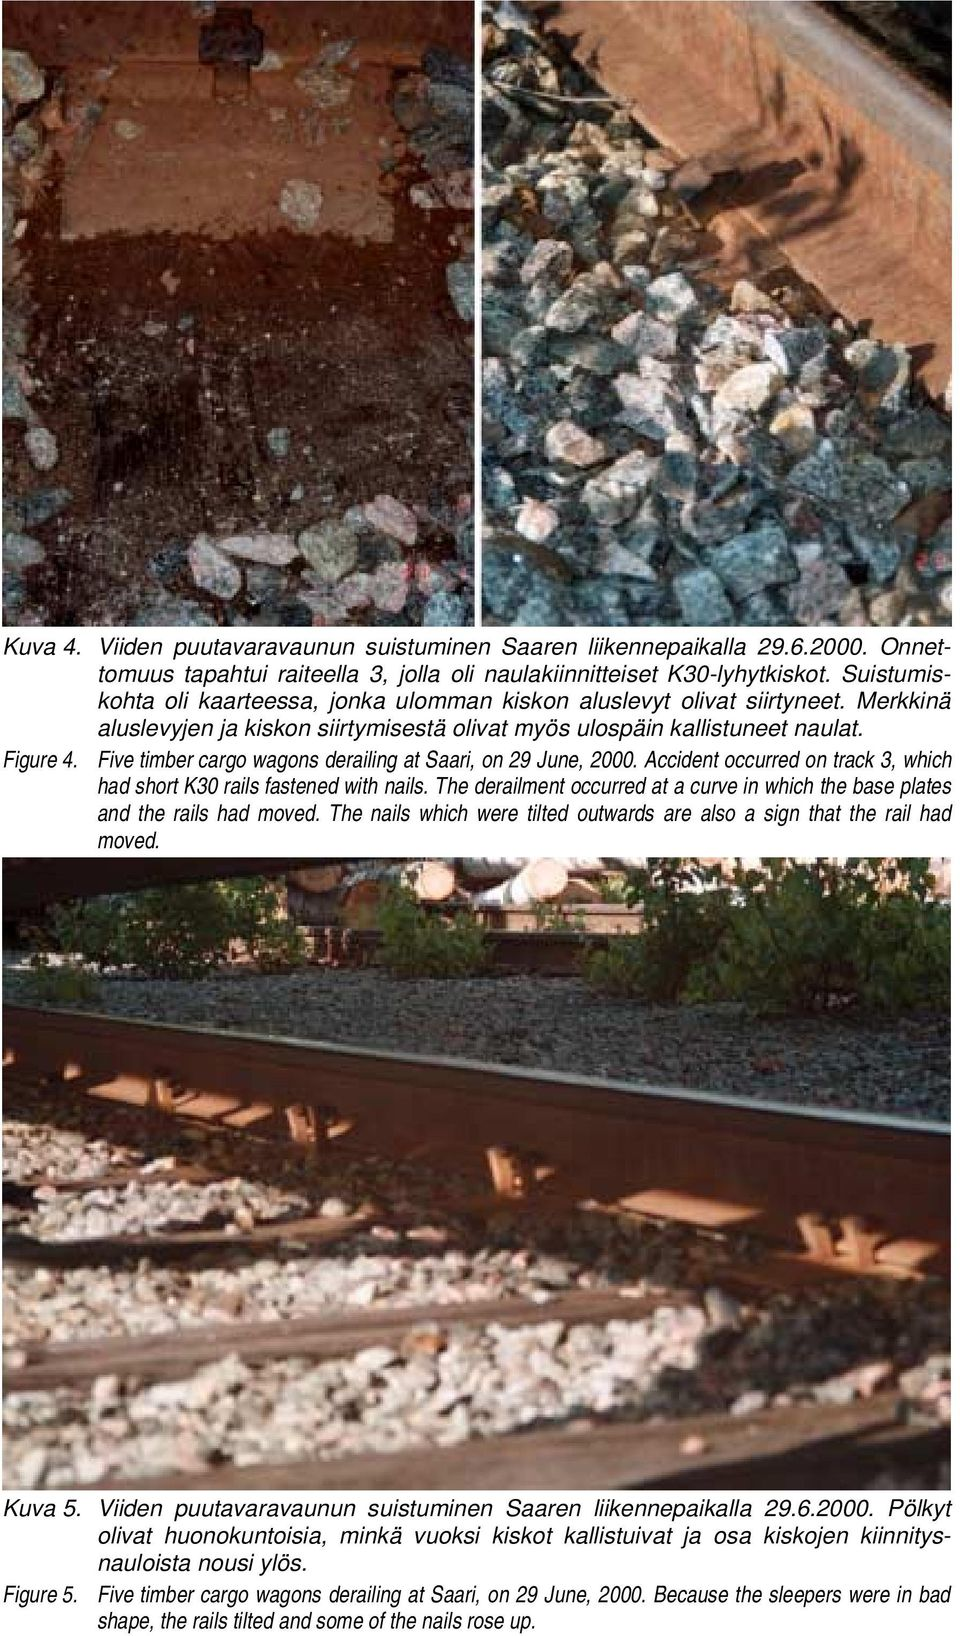 Accident occurred on track 3, which had short K30 rails fastened with nails. The derailment occurred at a curve in which the base plates and the rails had moved.